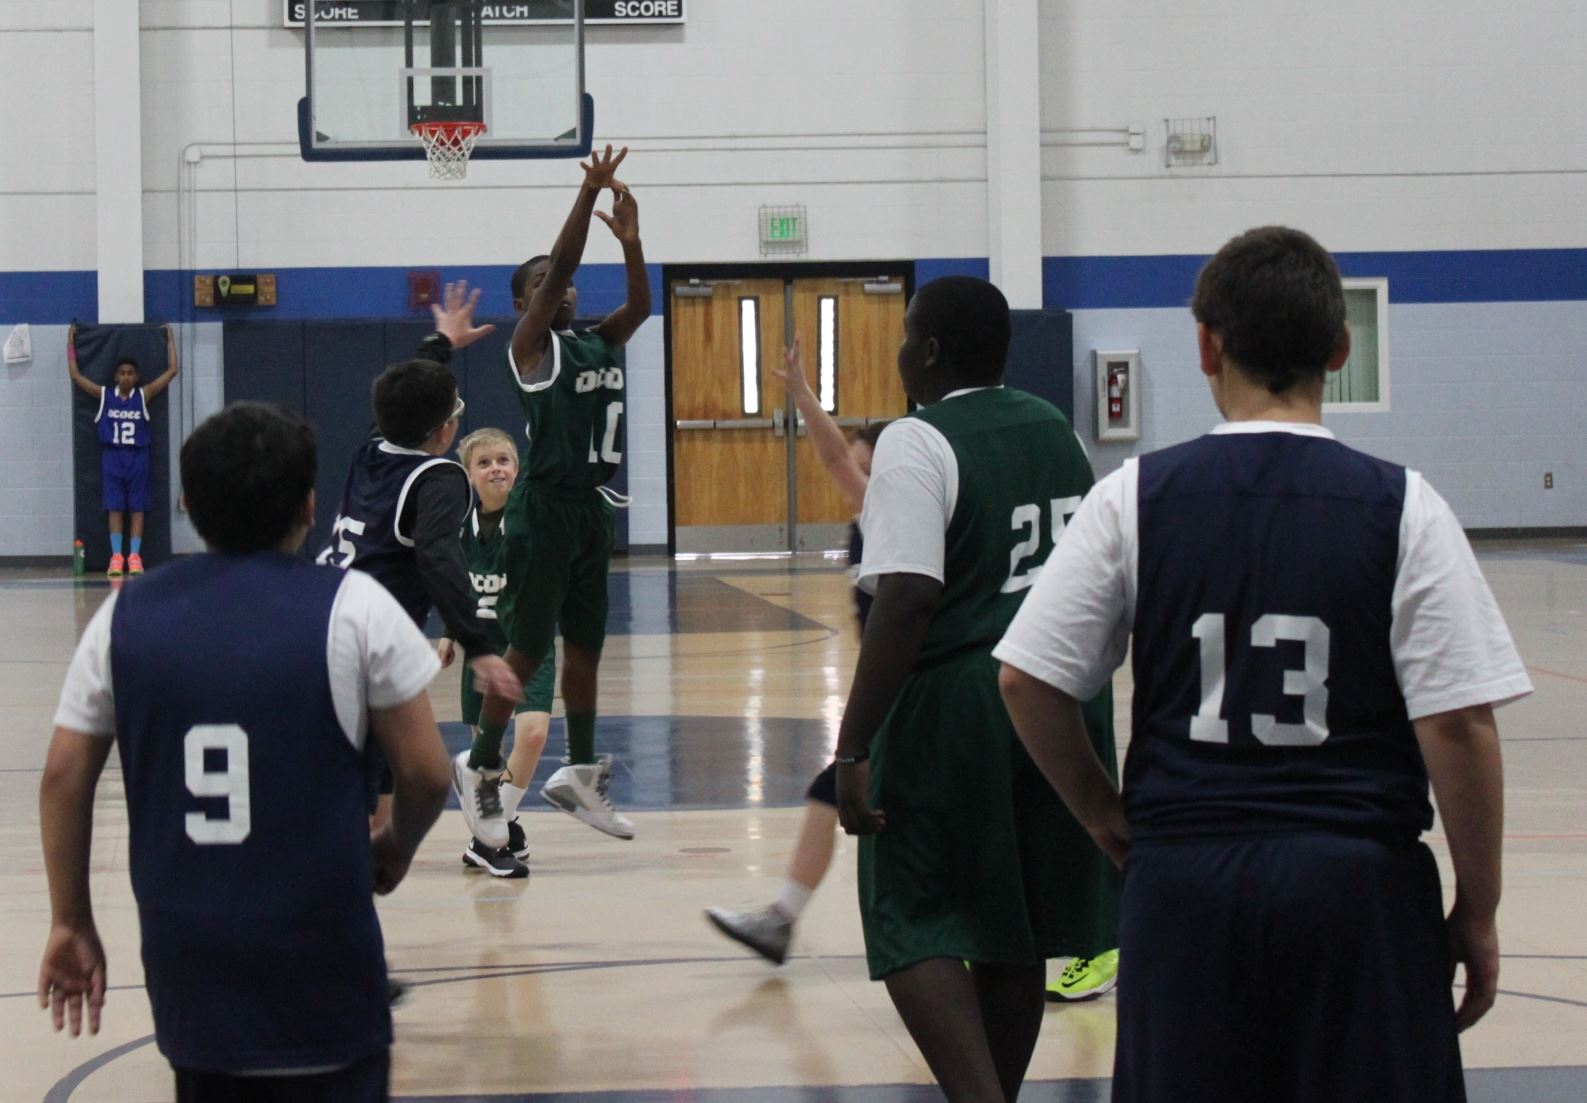 Player puts up a shot